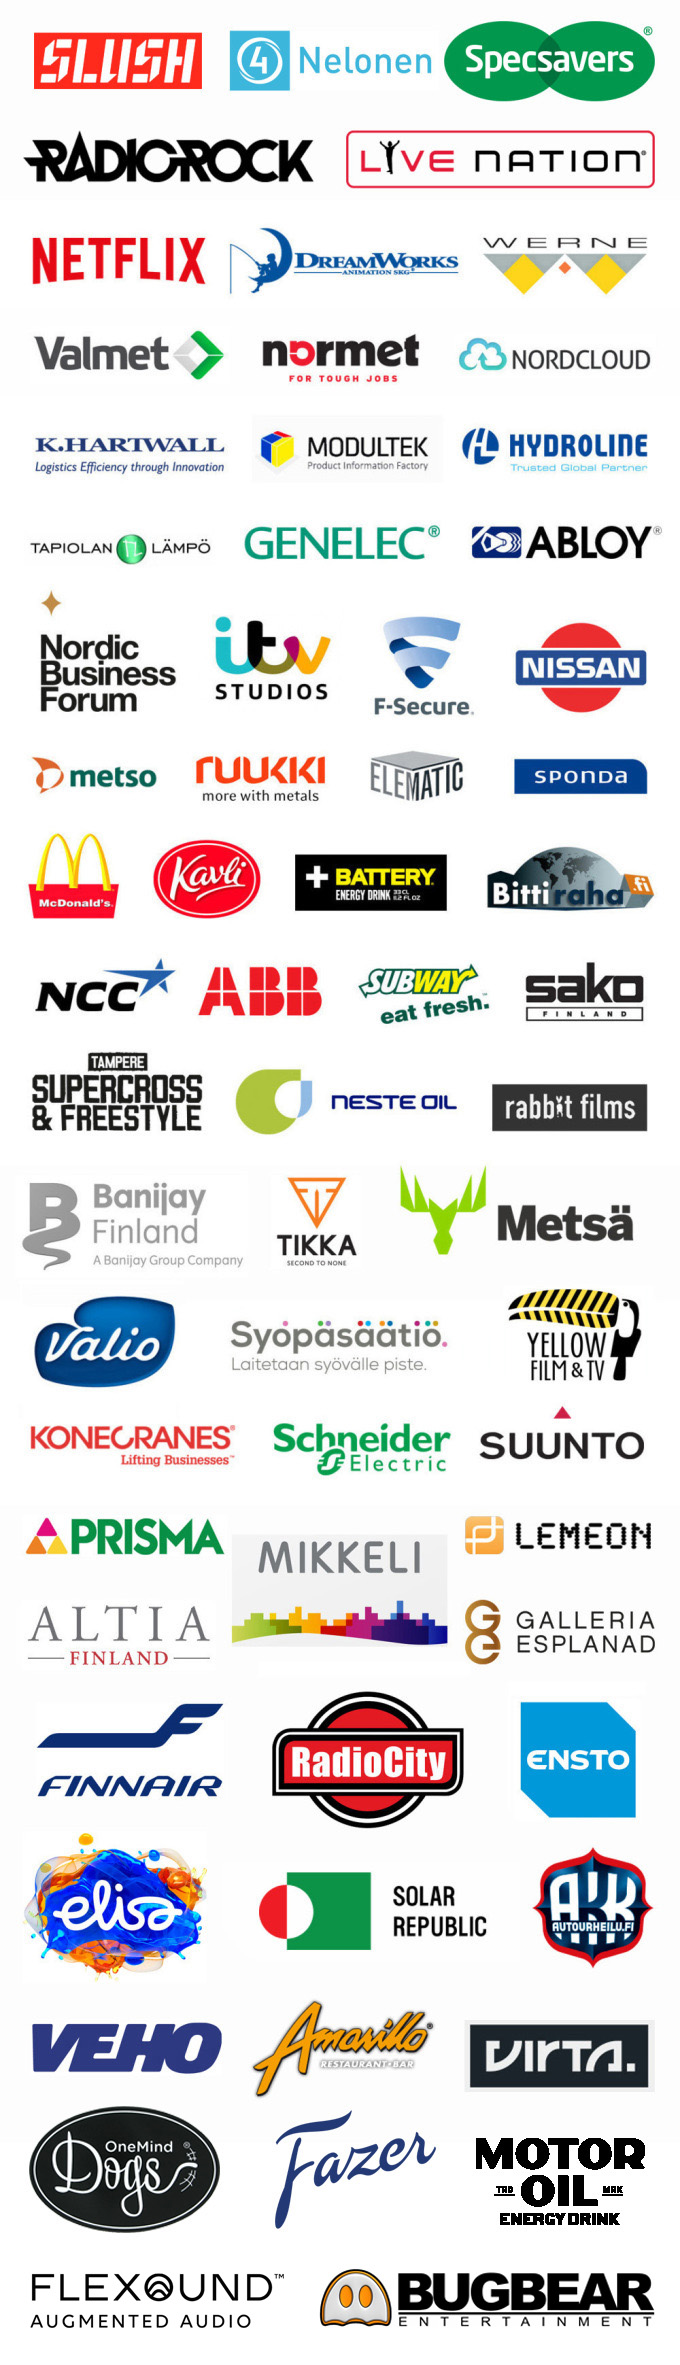 michael-majalahti-client-logos-collage3